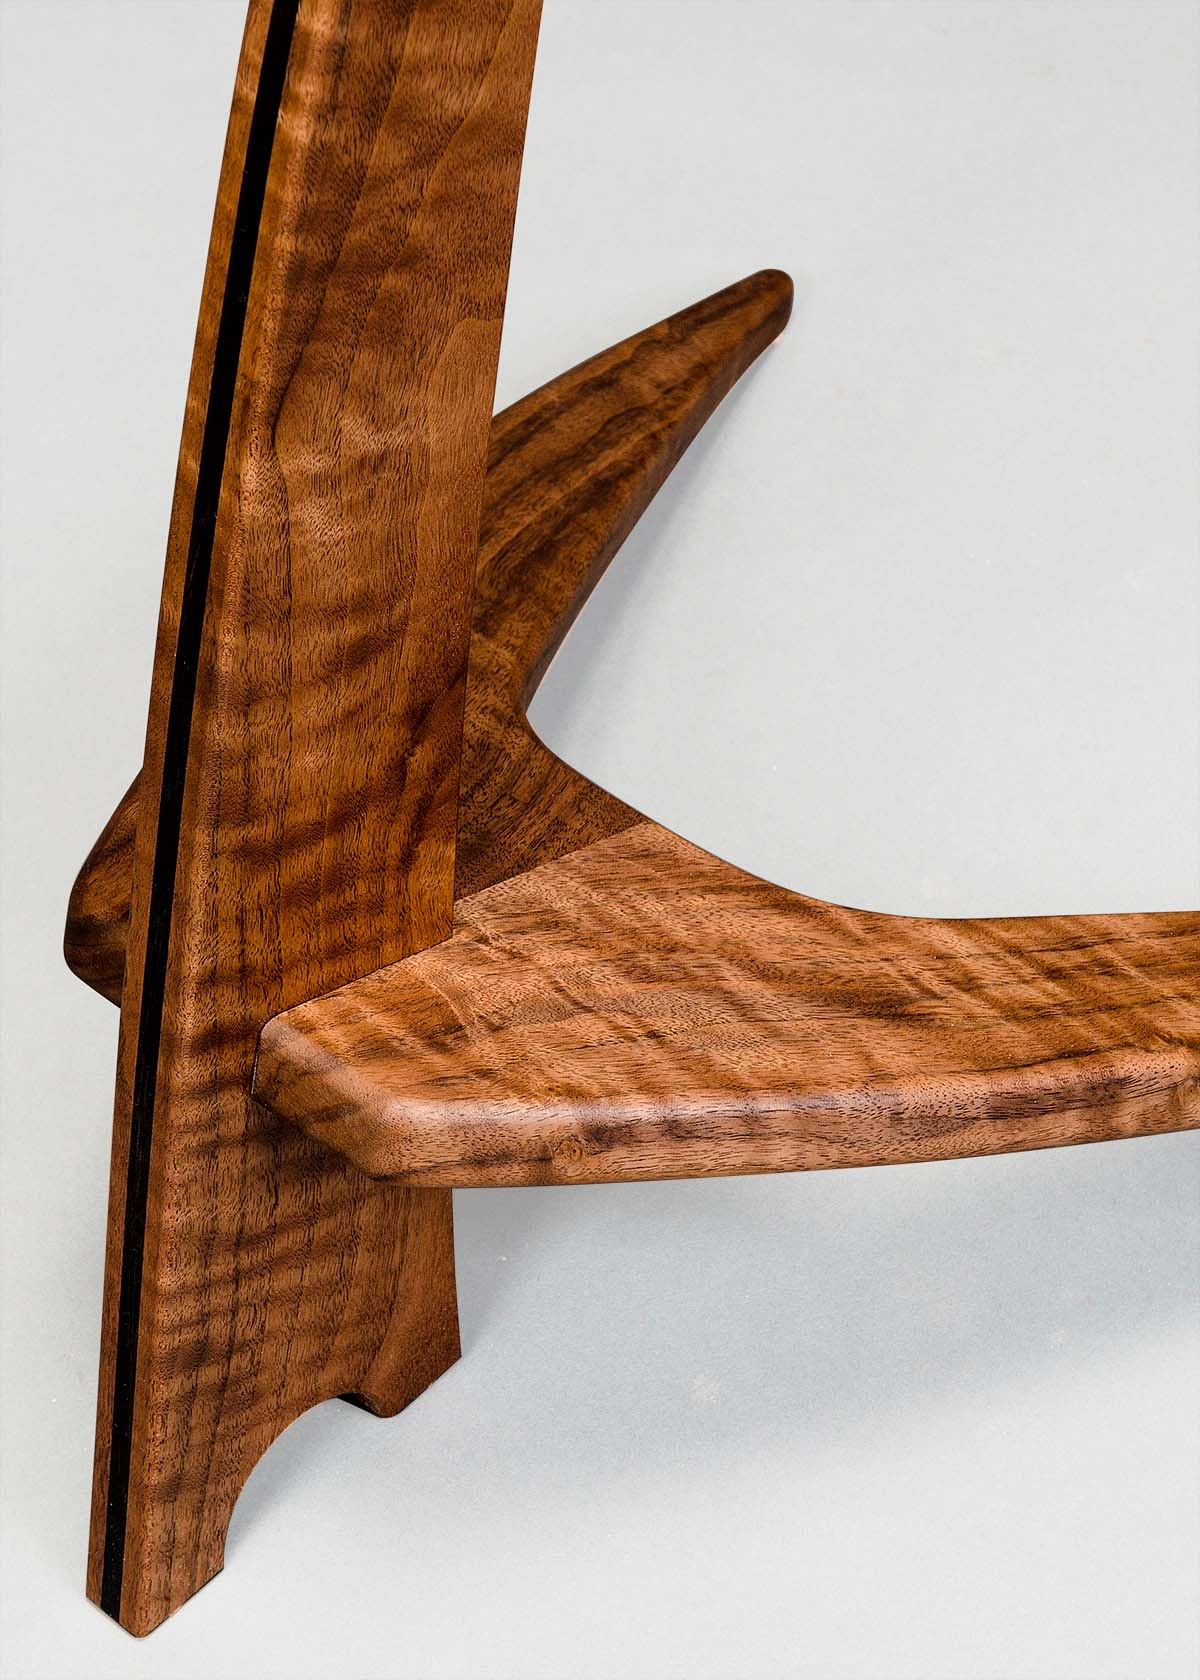 WM Guitar Stand in Claro Walnut with Ebony Inlay